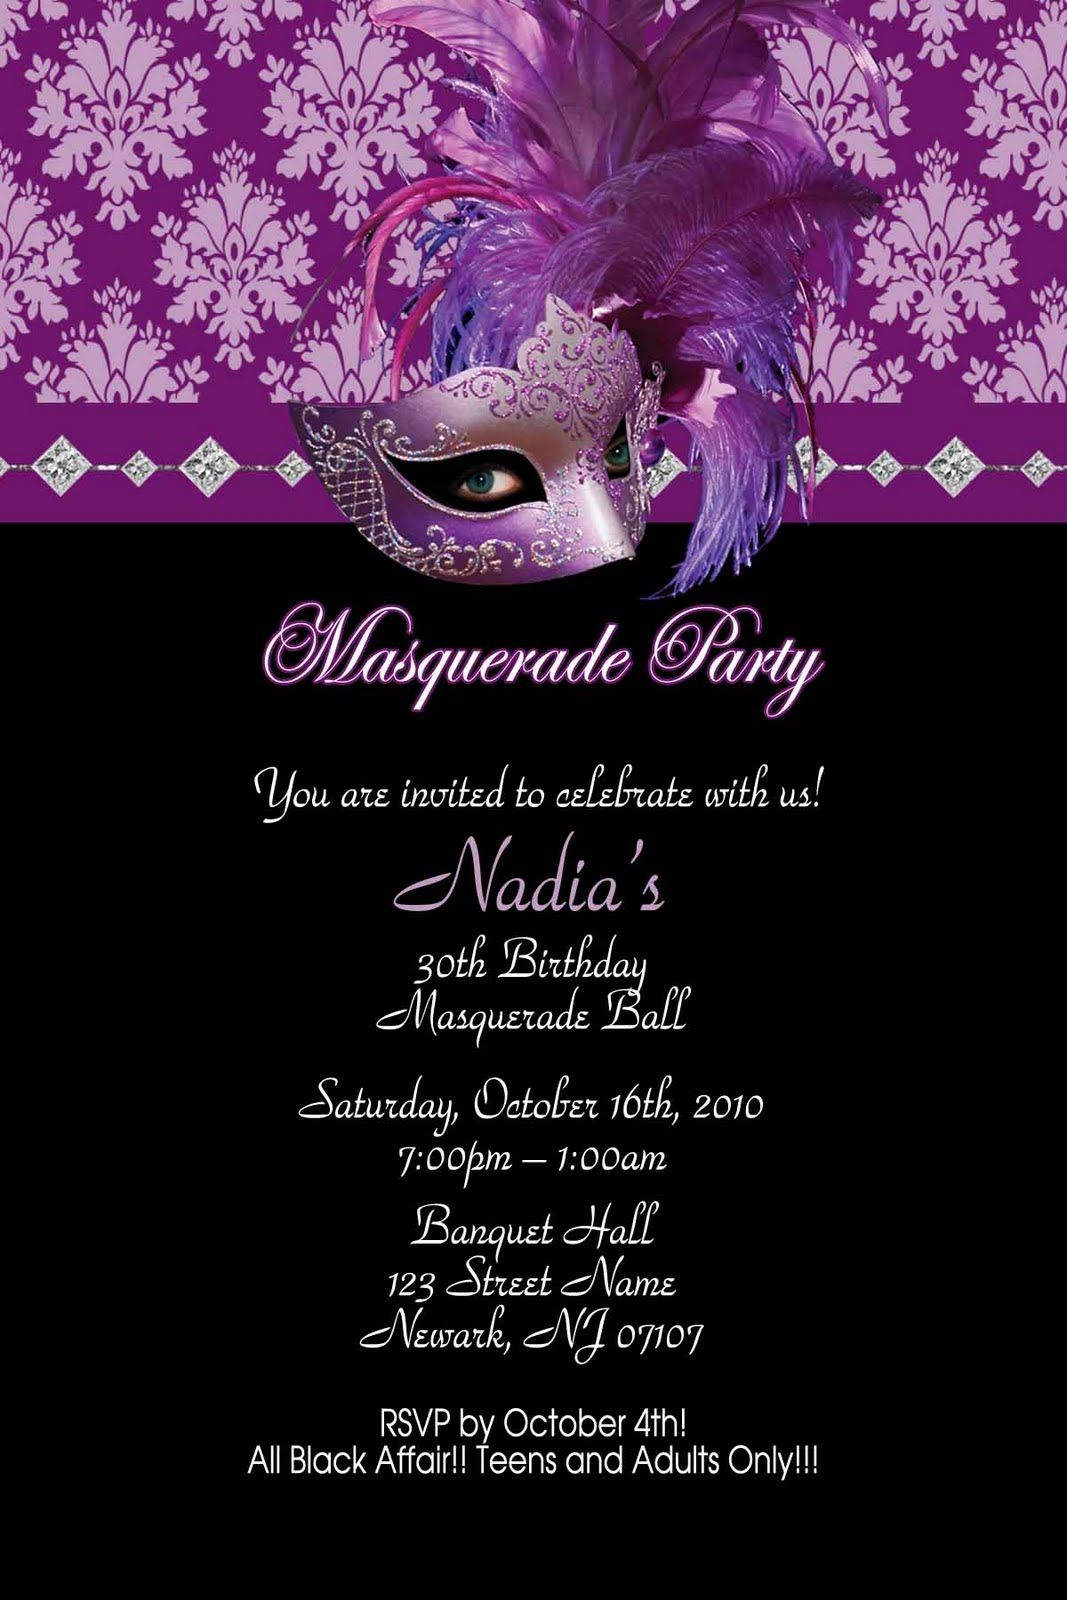 Masquerade Sweet 16 Party Ideas